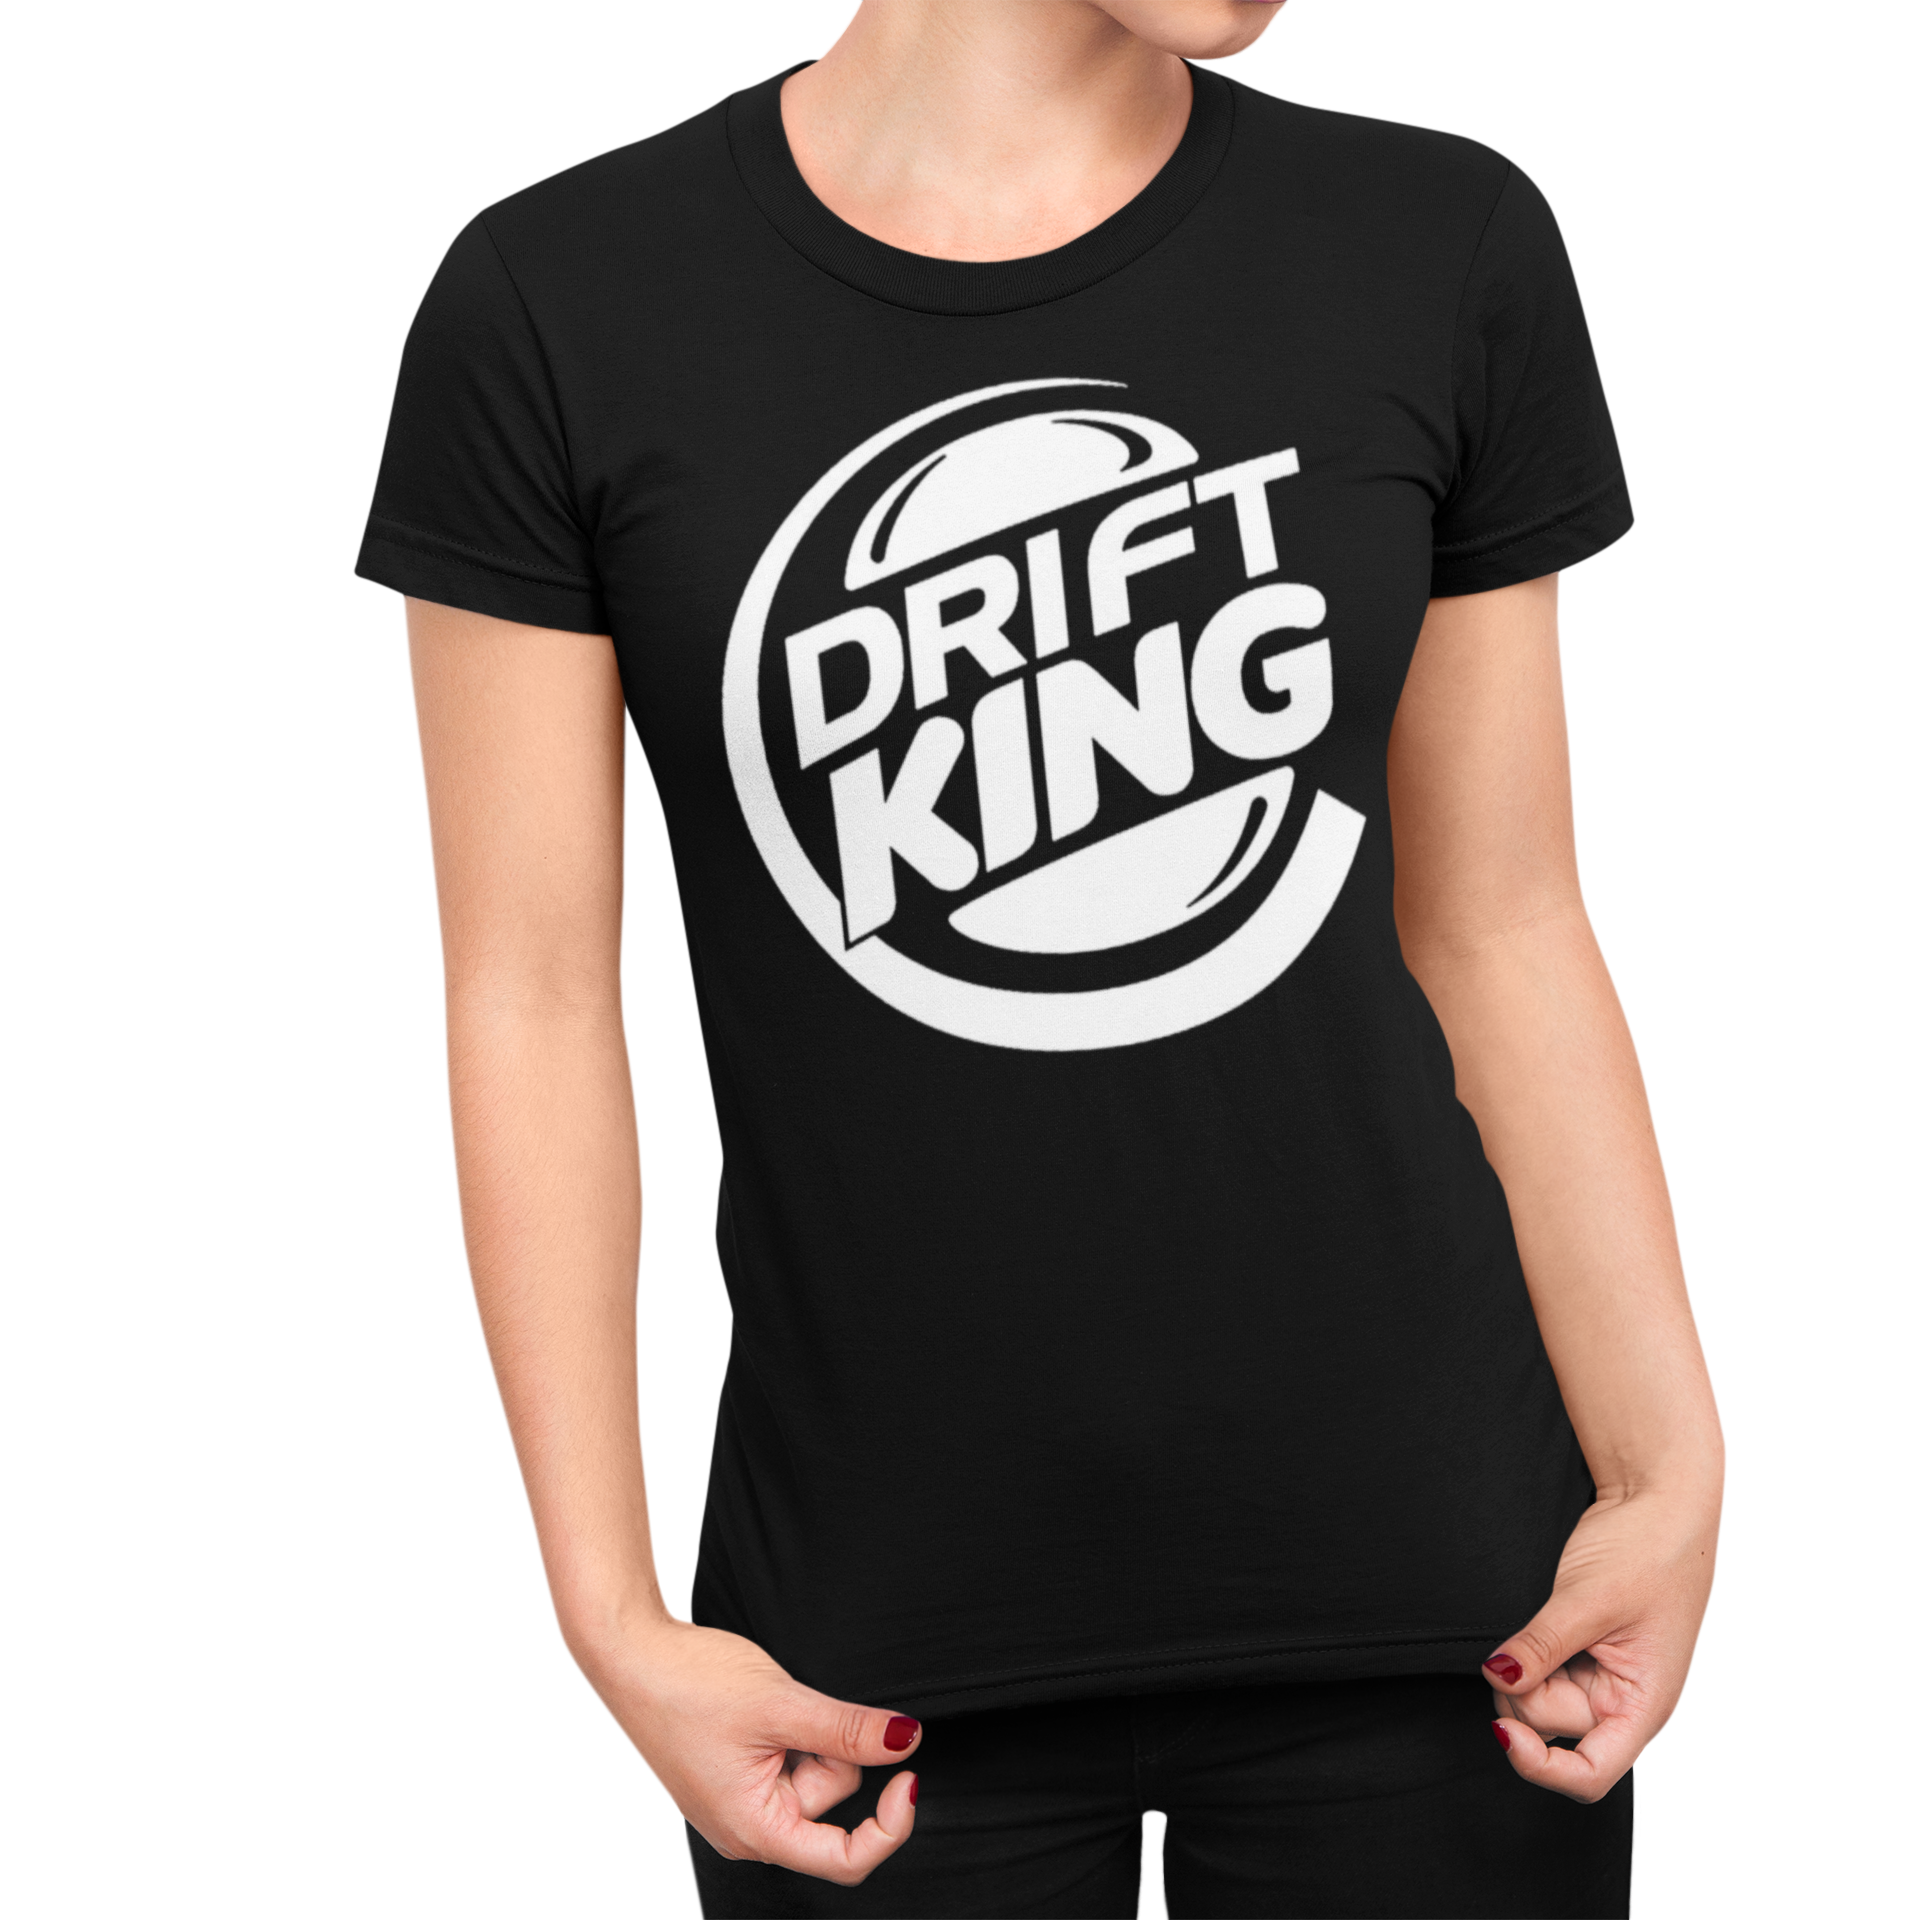 Drift King Women's T-Shirt